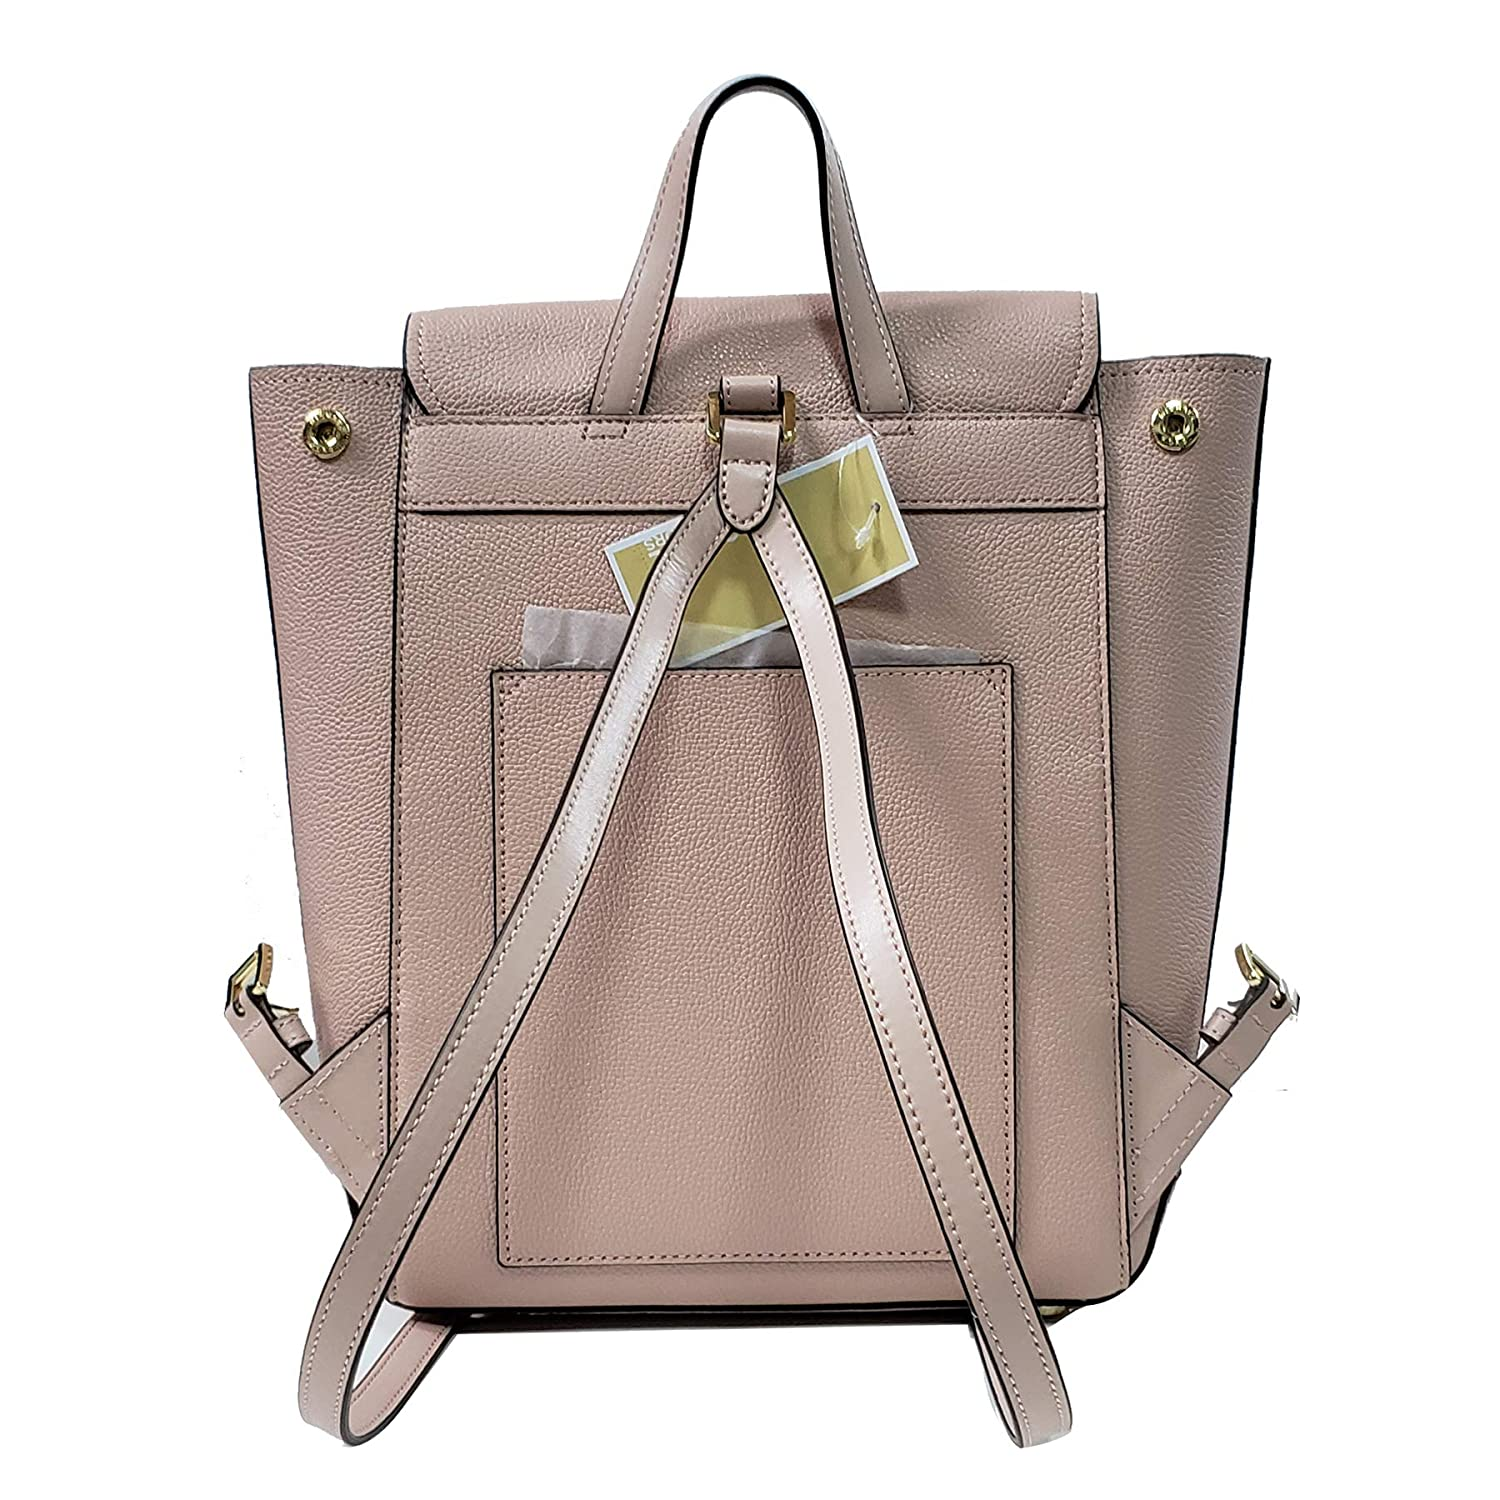 7b690c11fcbe4 Amazon.com  Michael Kors Hayes MD Backpack Leather Pink Ballet  (35F8GYEB2T)  Shoes